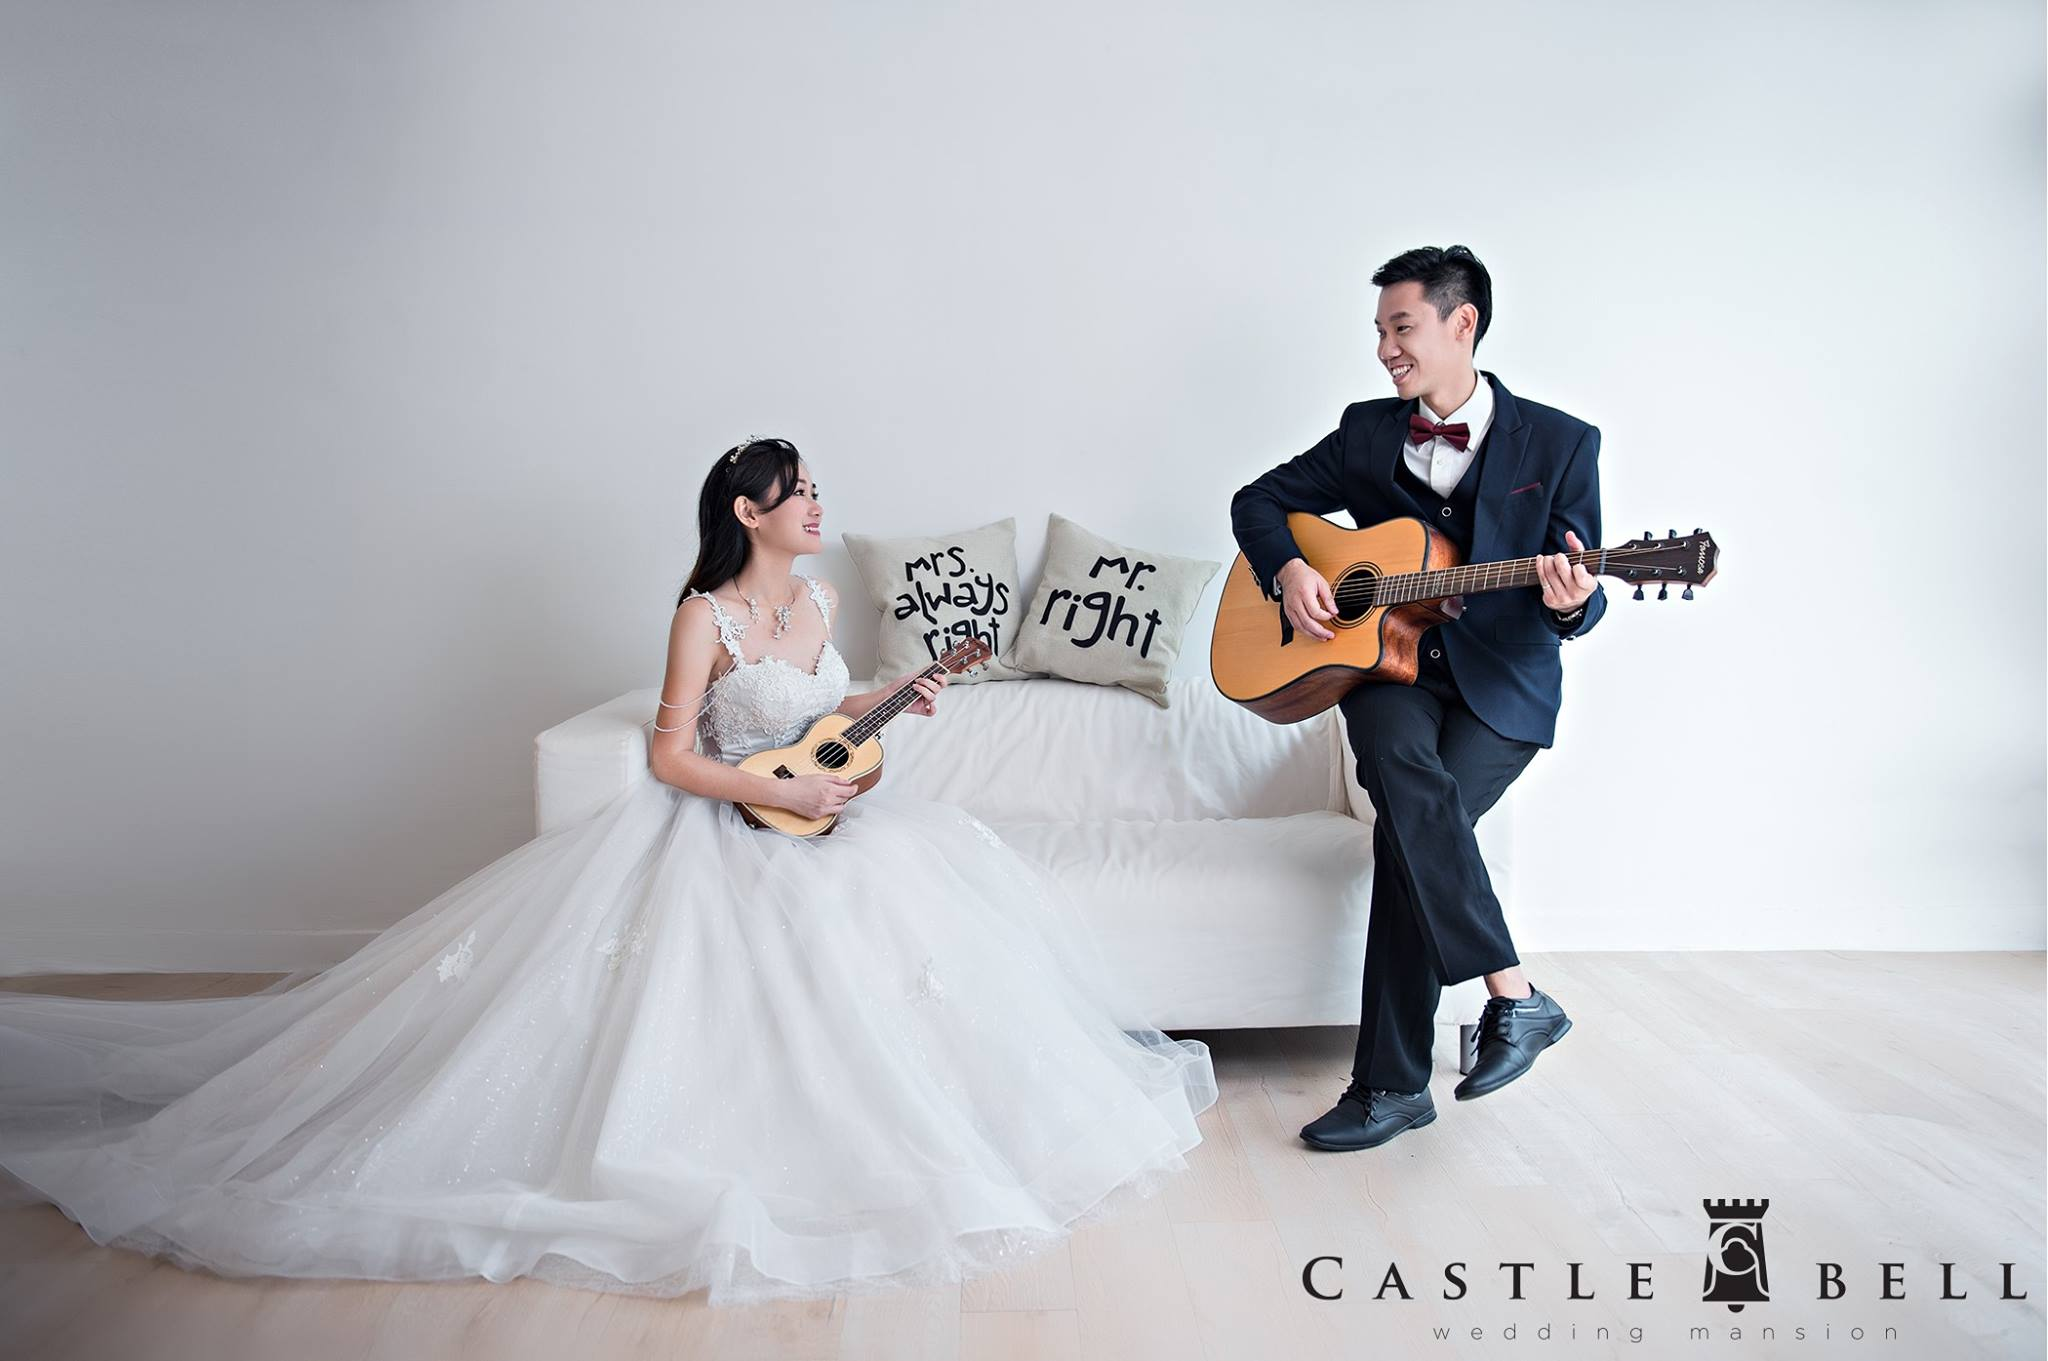 Castlebell Wedding Mansion image